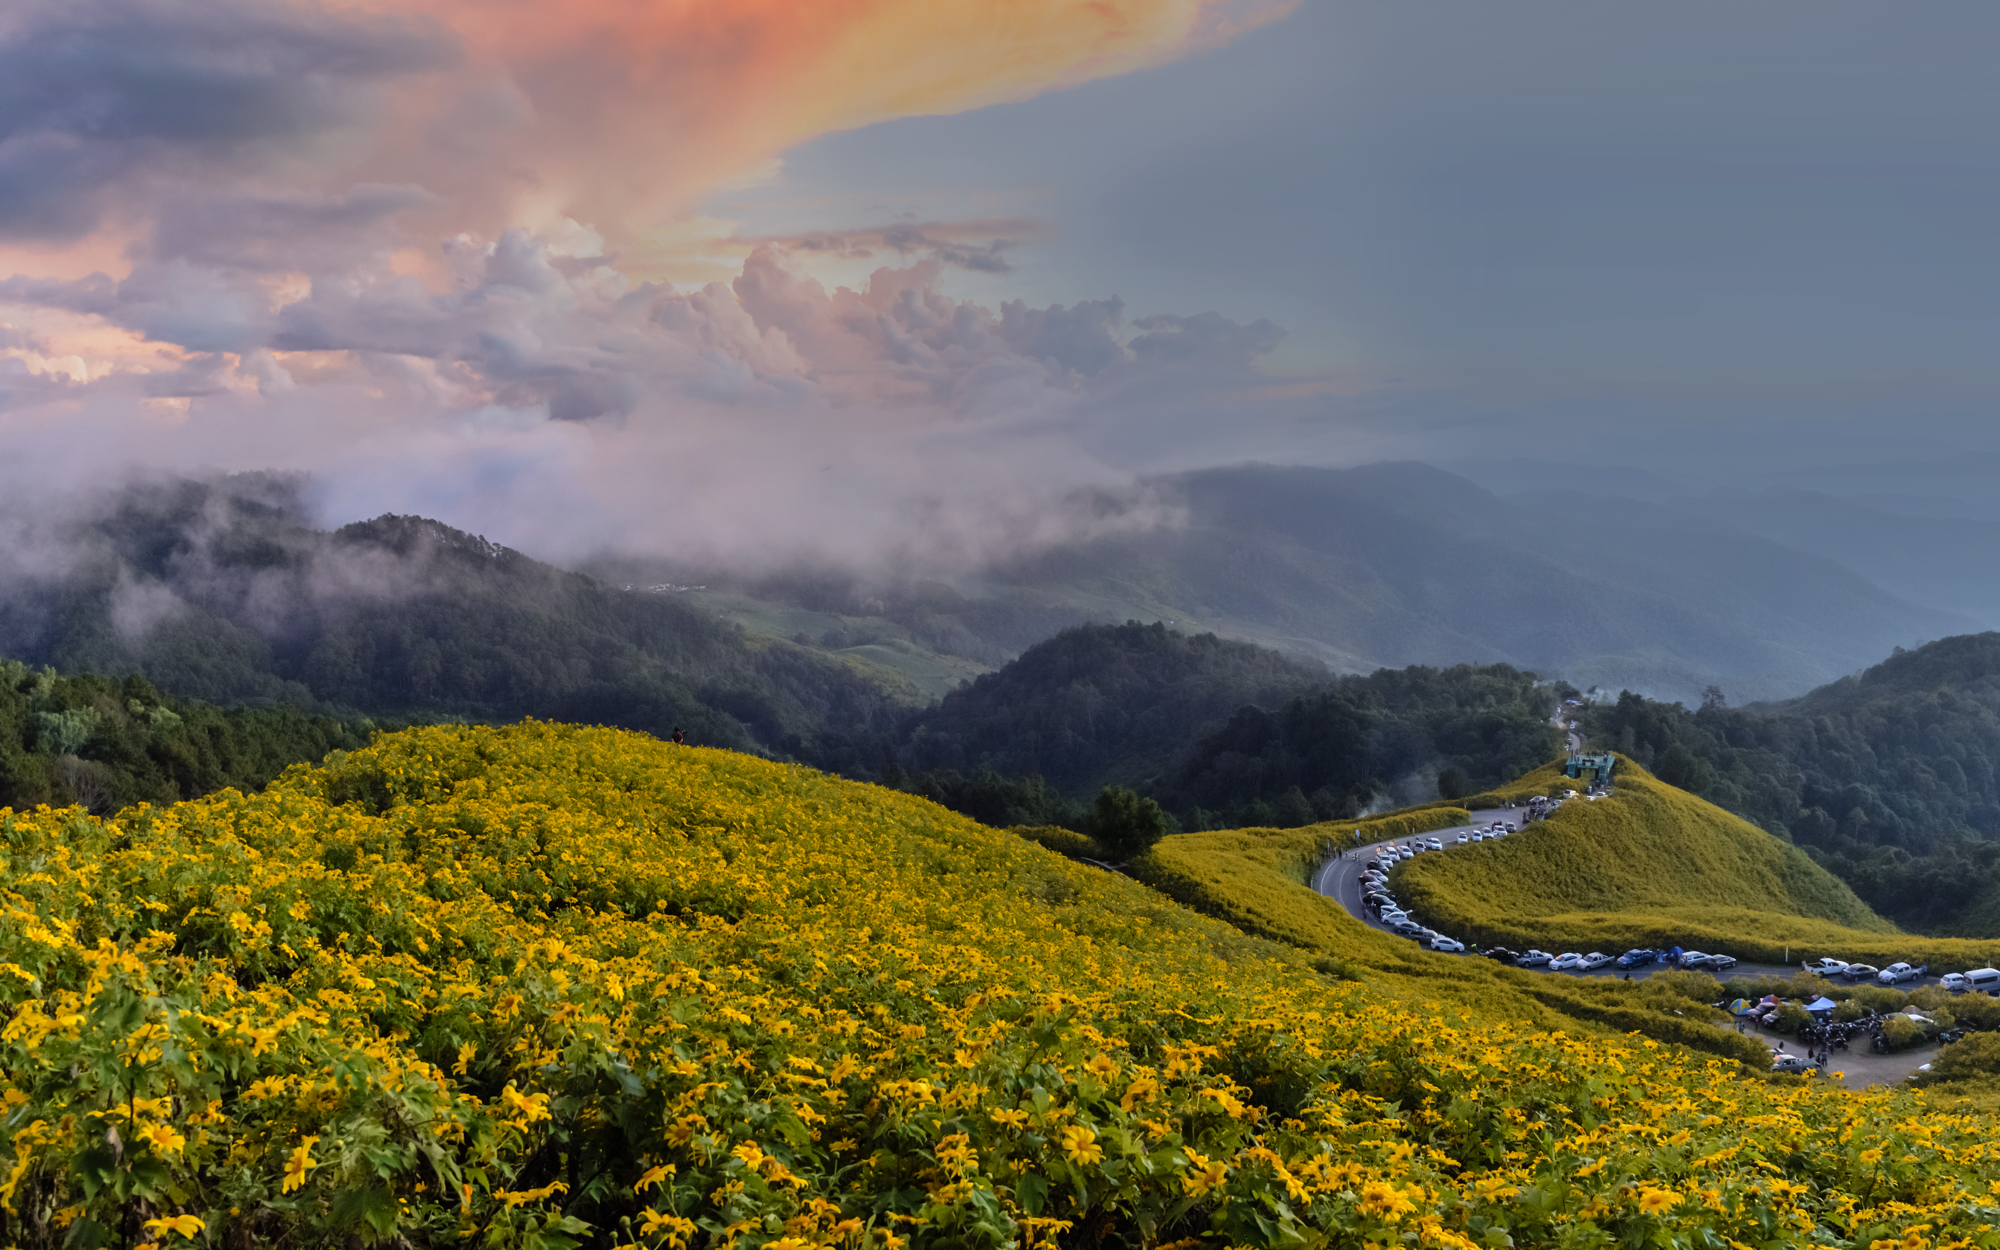 Rolling Hills of Yellow Flowers With a Winding Road Lined With Parked Cars